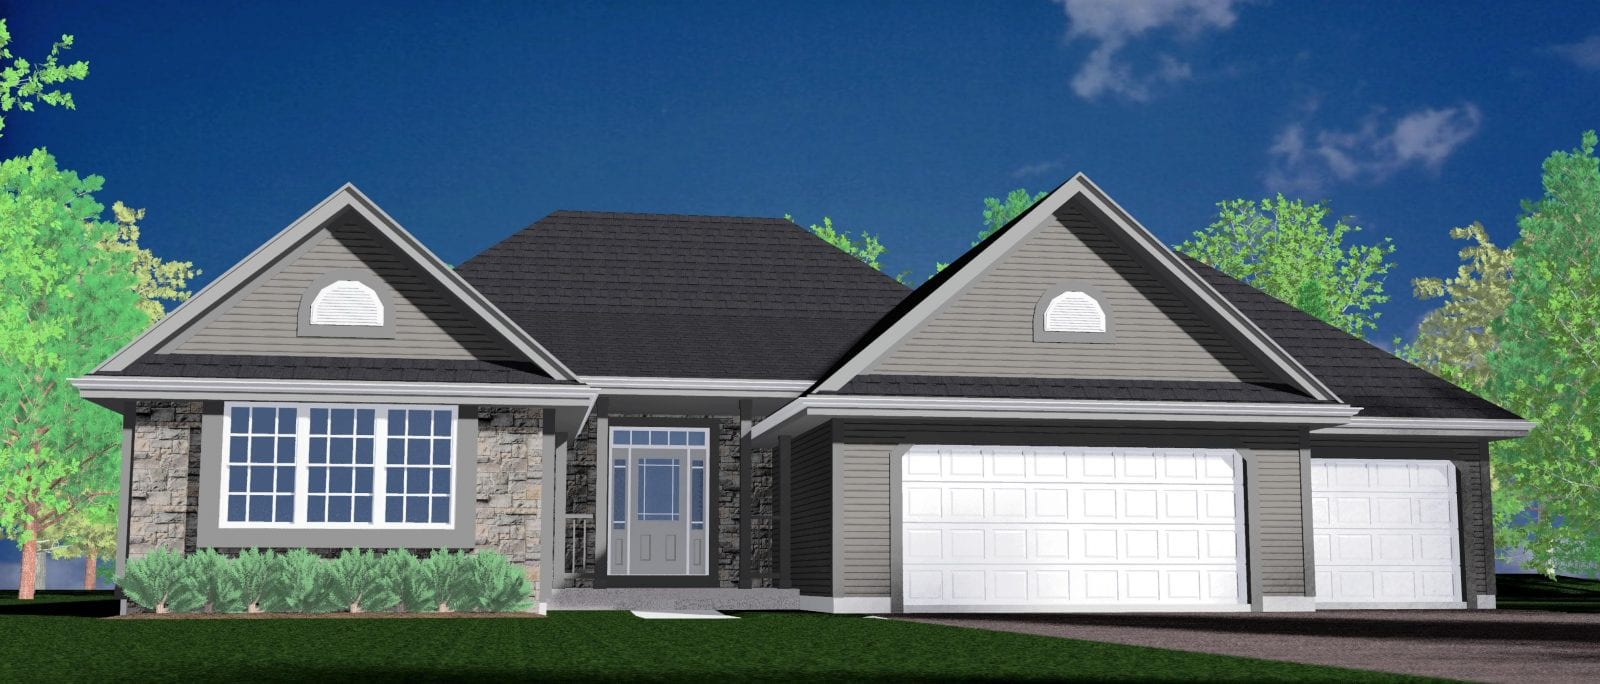 Kaerek Homes Aspen II Rendering